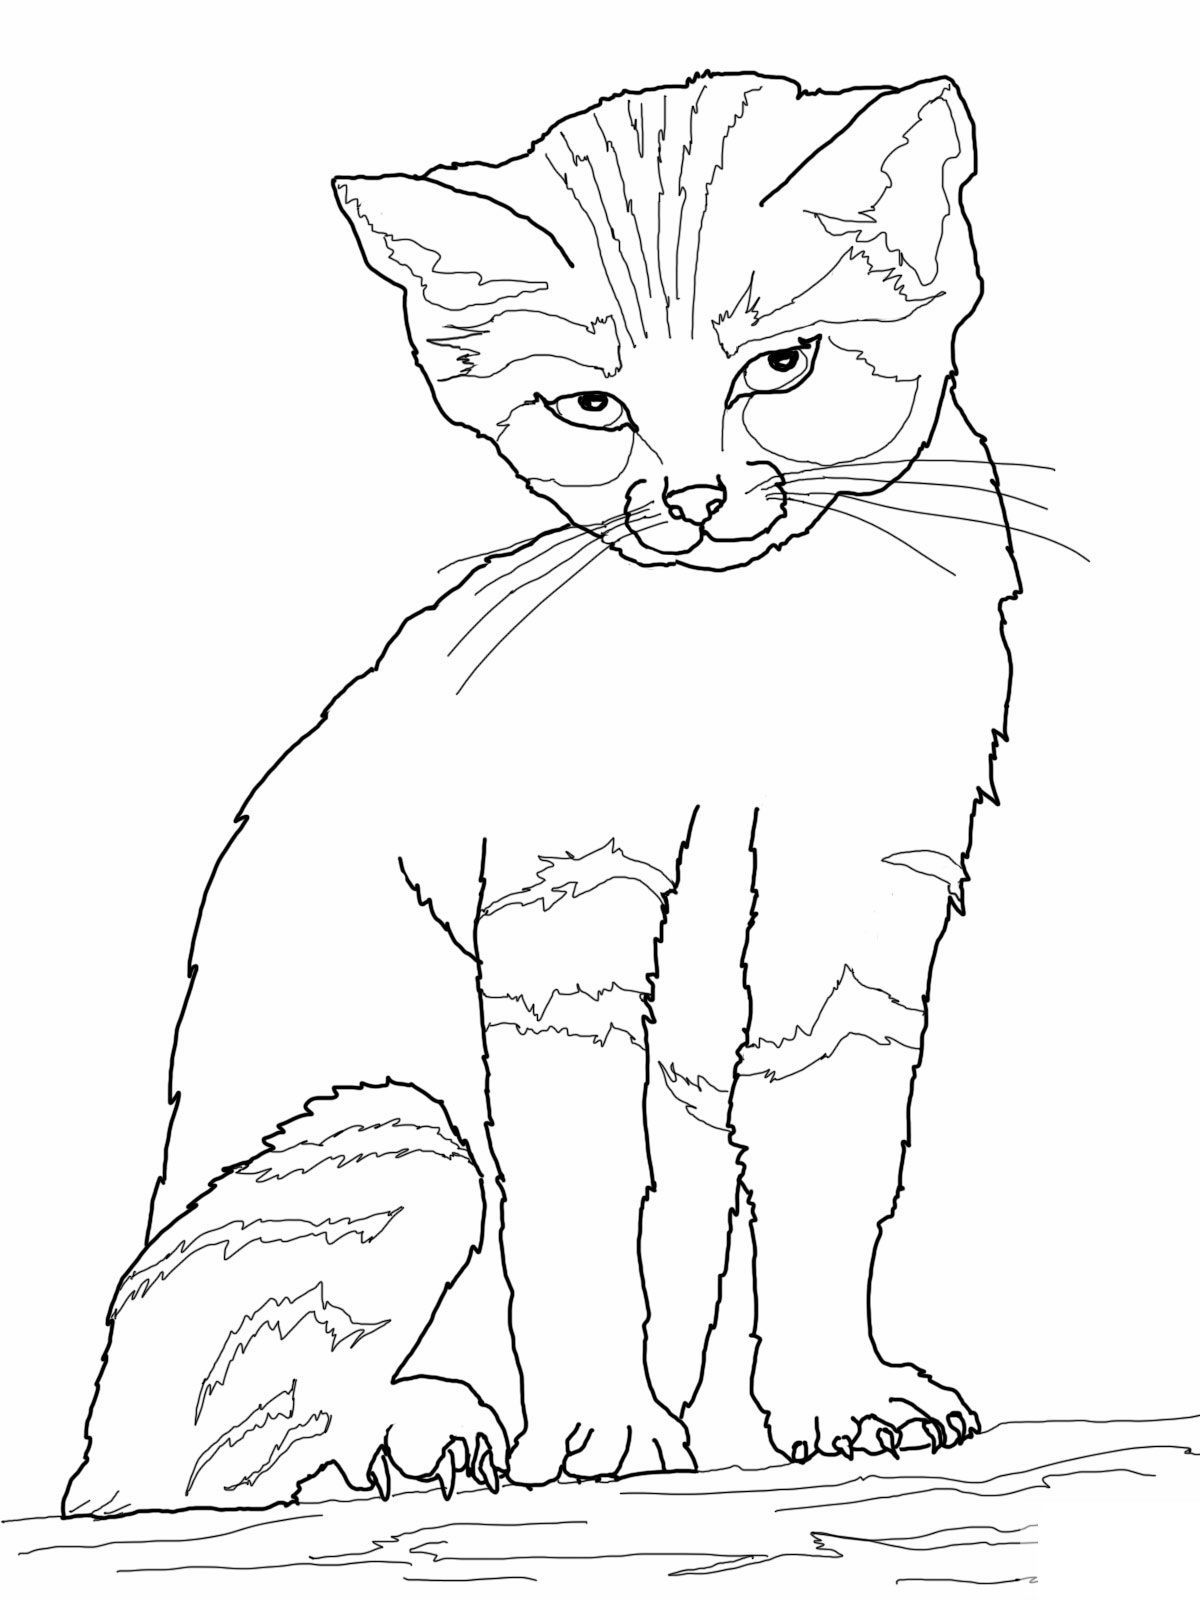 1200x1600 The Best Last Minute Calico Cat Coloring Page Image For Trend